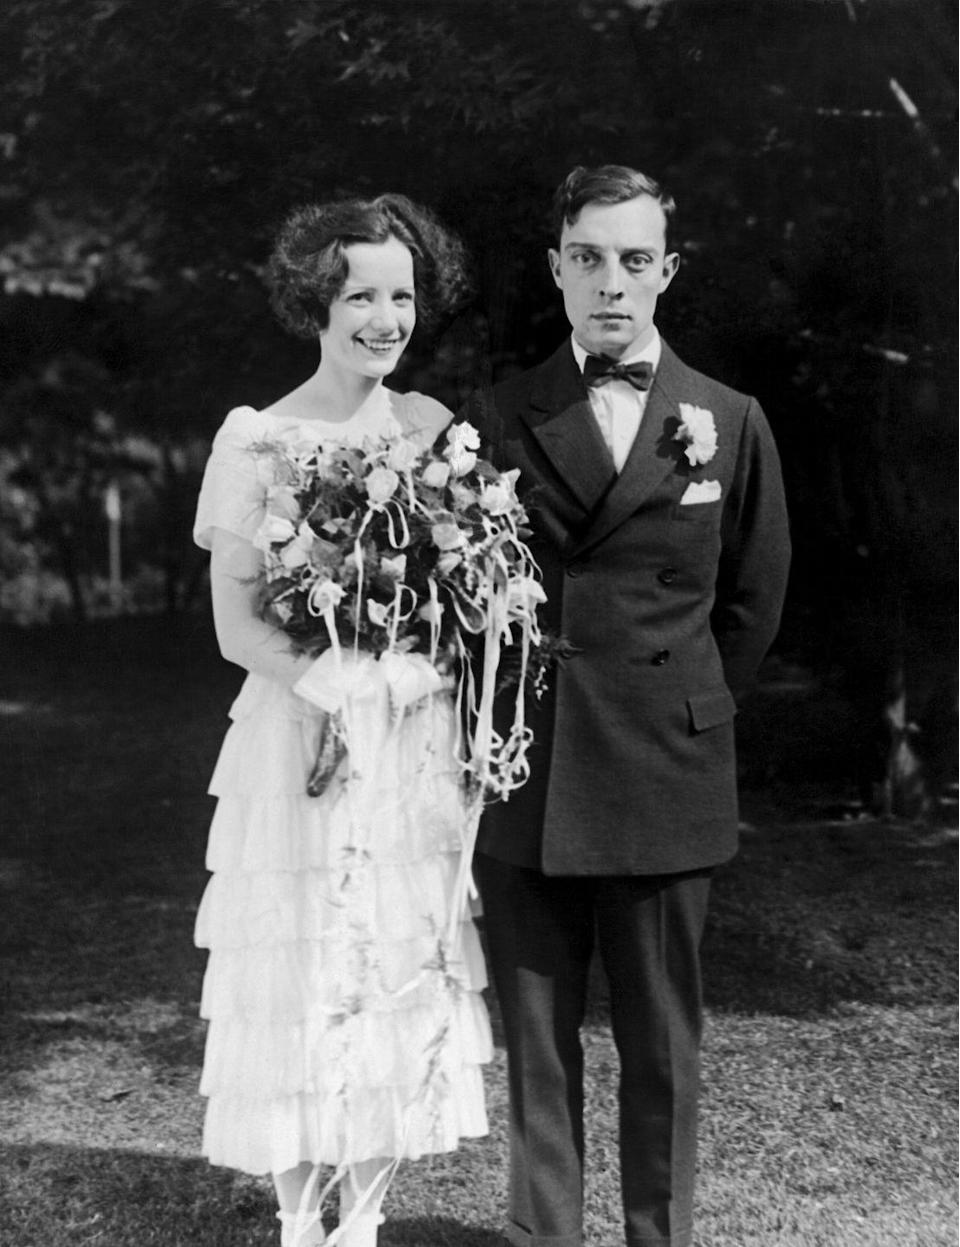 "<p>Silent film actress Natalie Talmadge married Hollywood great Buster Keaton in 1921, carrying a bouquet of roses intertwined with long ribbon streamers, <a href=""http://www.fashion-era.com/Weddings/1922-old-wedding-photos.htm"" rel=""nofollow noopener"" target=""_blank"" data-ylk=""slk:a popular bouquet style in the U.S."" class=""link rapid-noclick-resp"">a popular bouquet style in the U.S.</a> at the time.</p>"